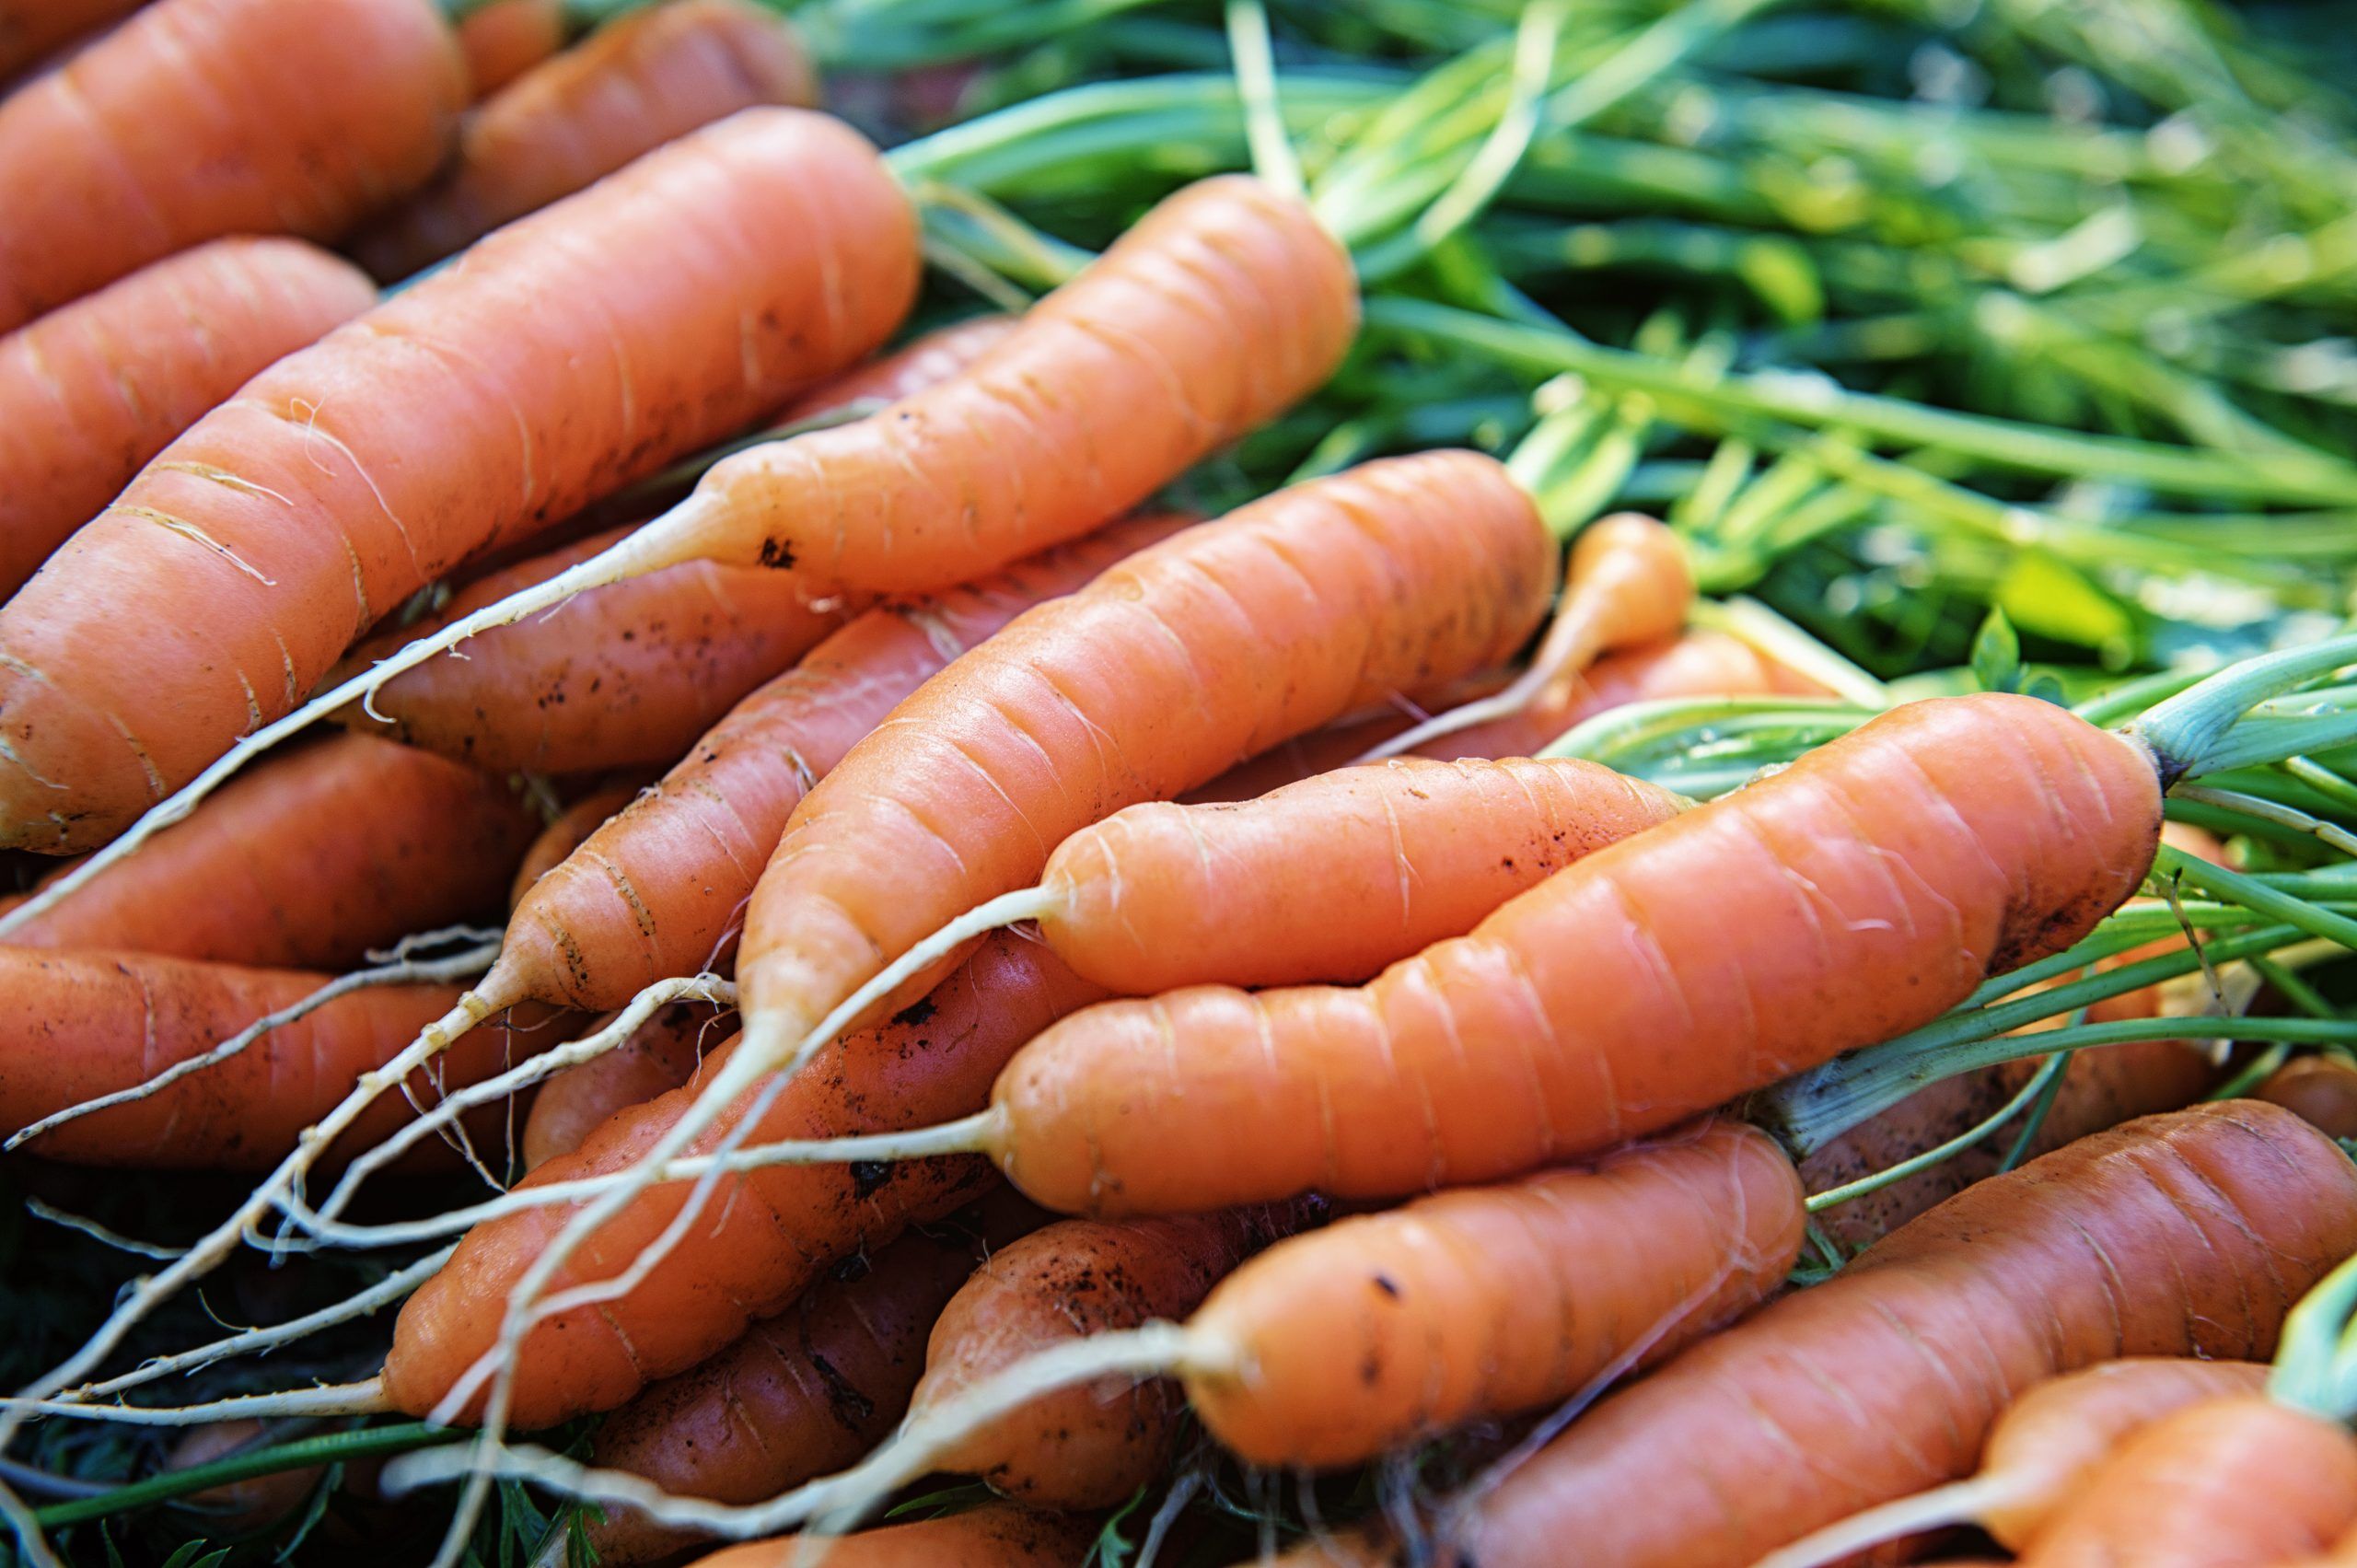 Carrots Lying on the Ground